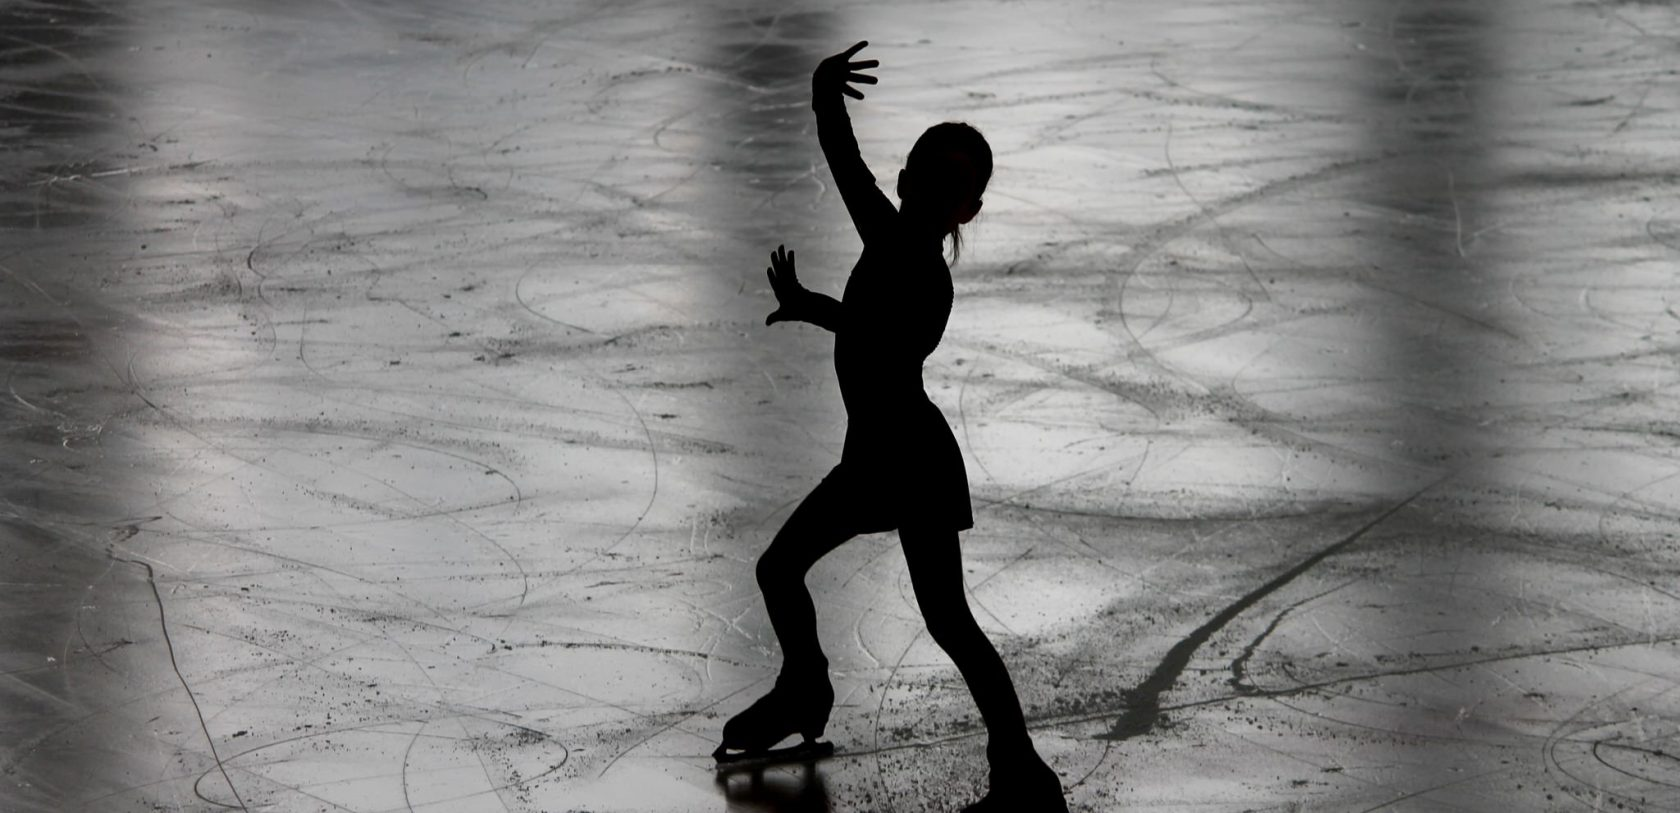 Figure skating patinoire